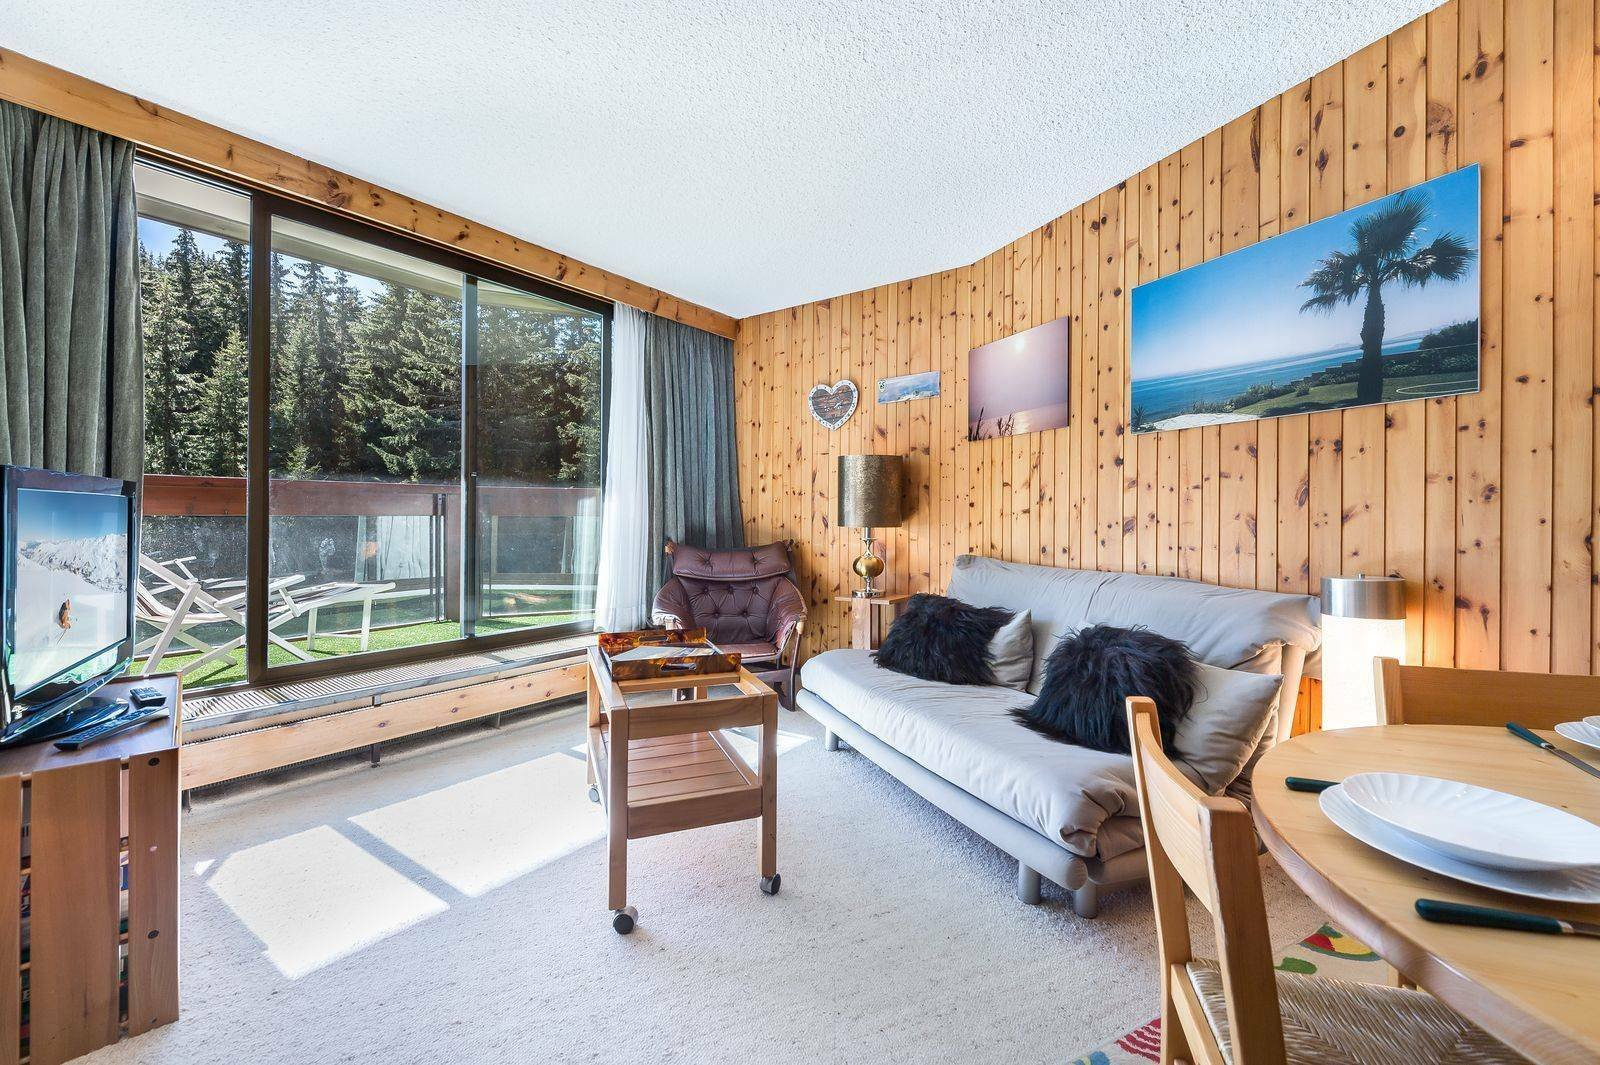 Apartment sleeps 4, close to ski lifts in Courchevel 1850